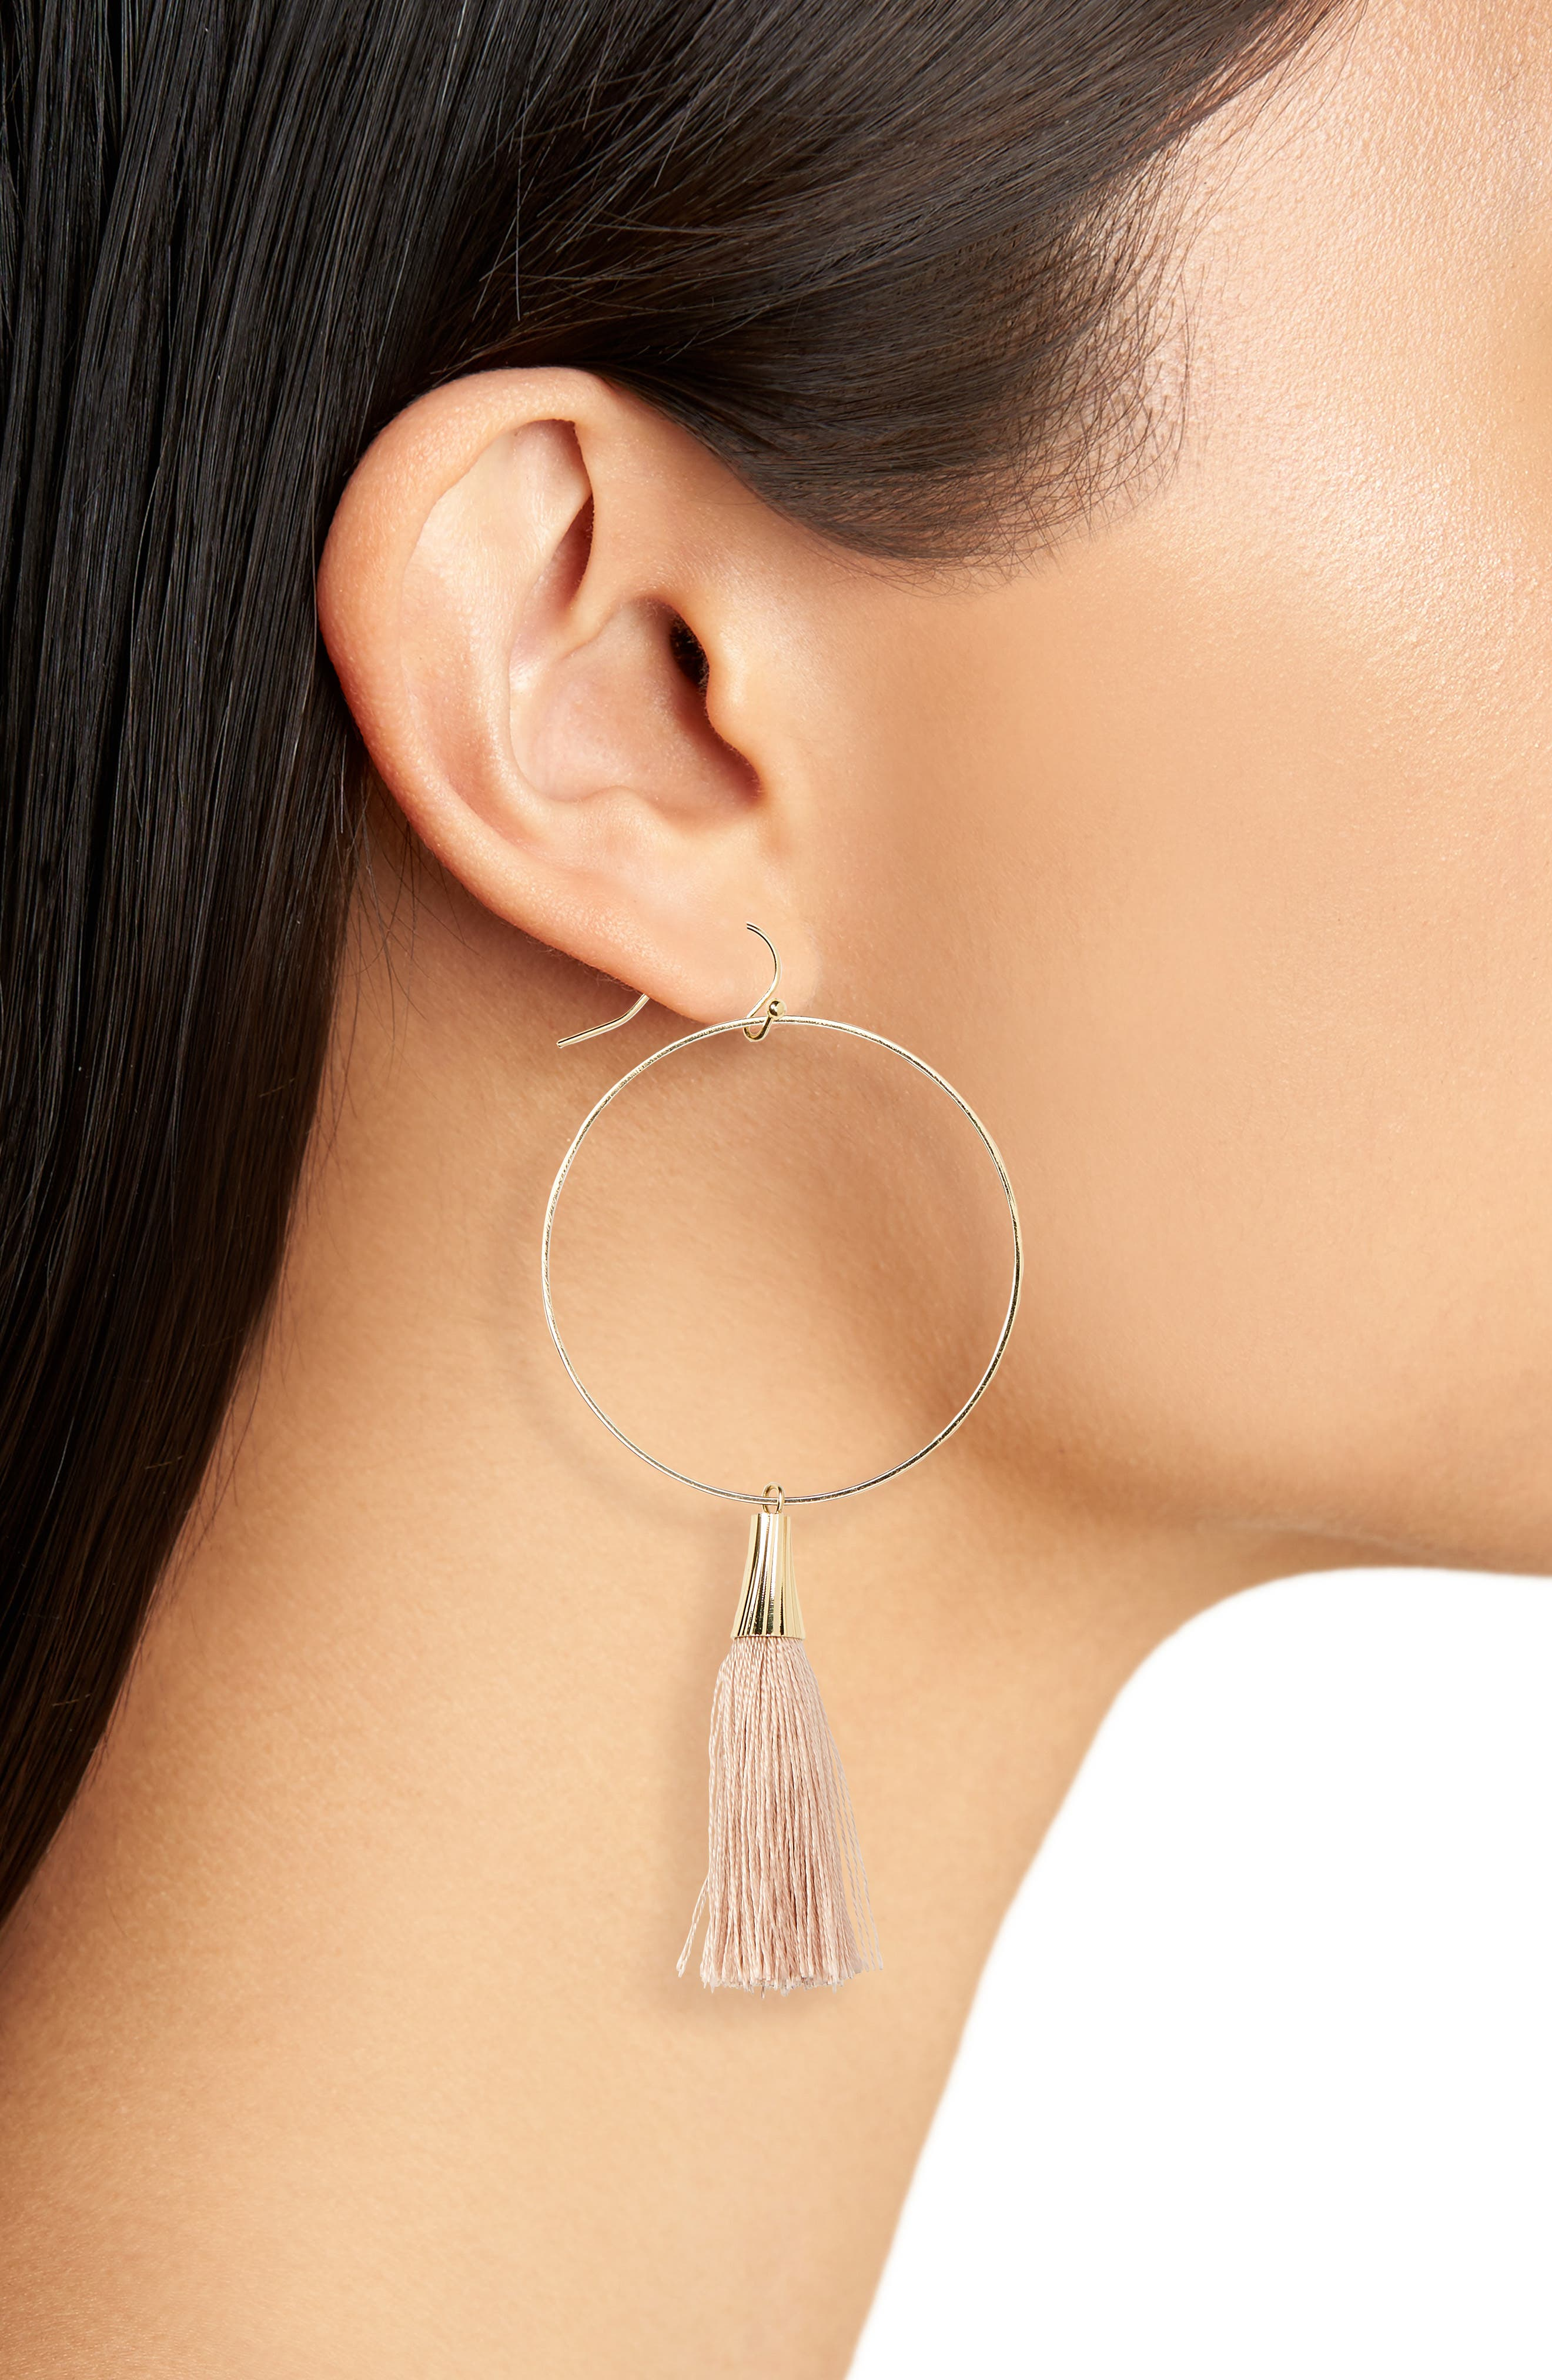 Tassel Hoop Earrings,                             Alternate thumbnail 2, color,                             Beige